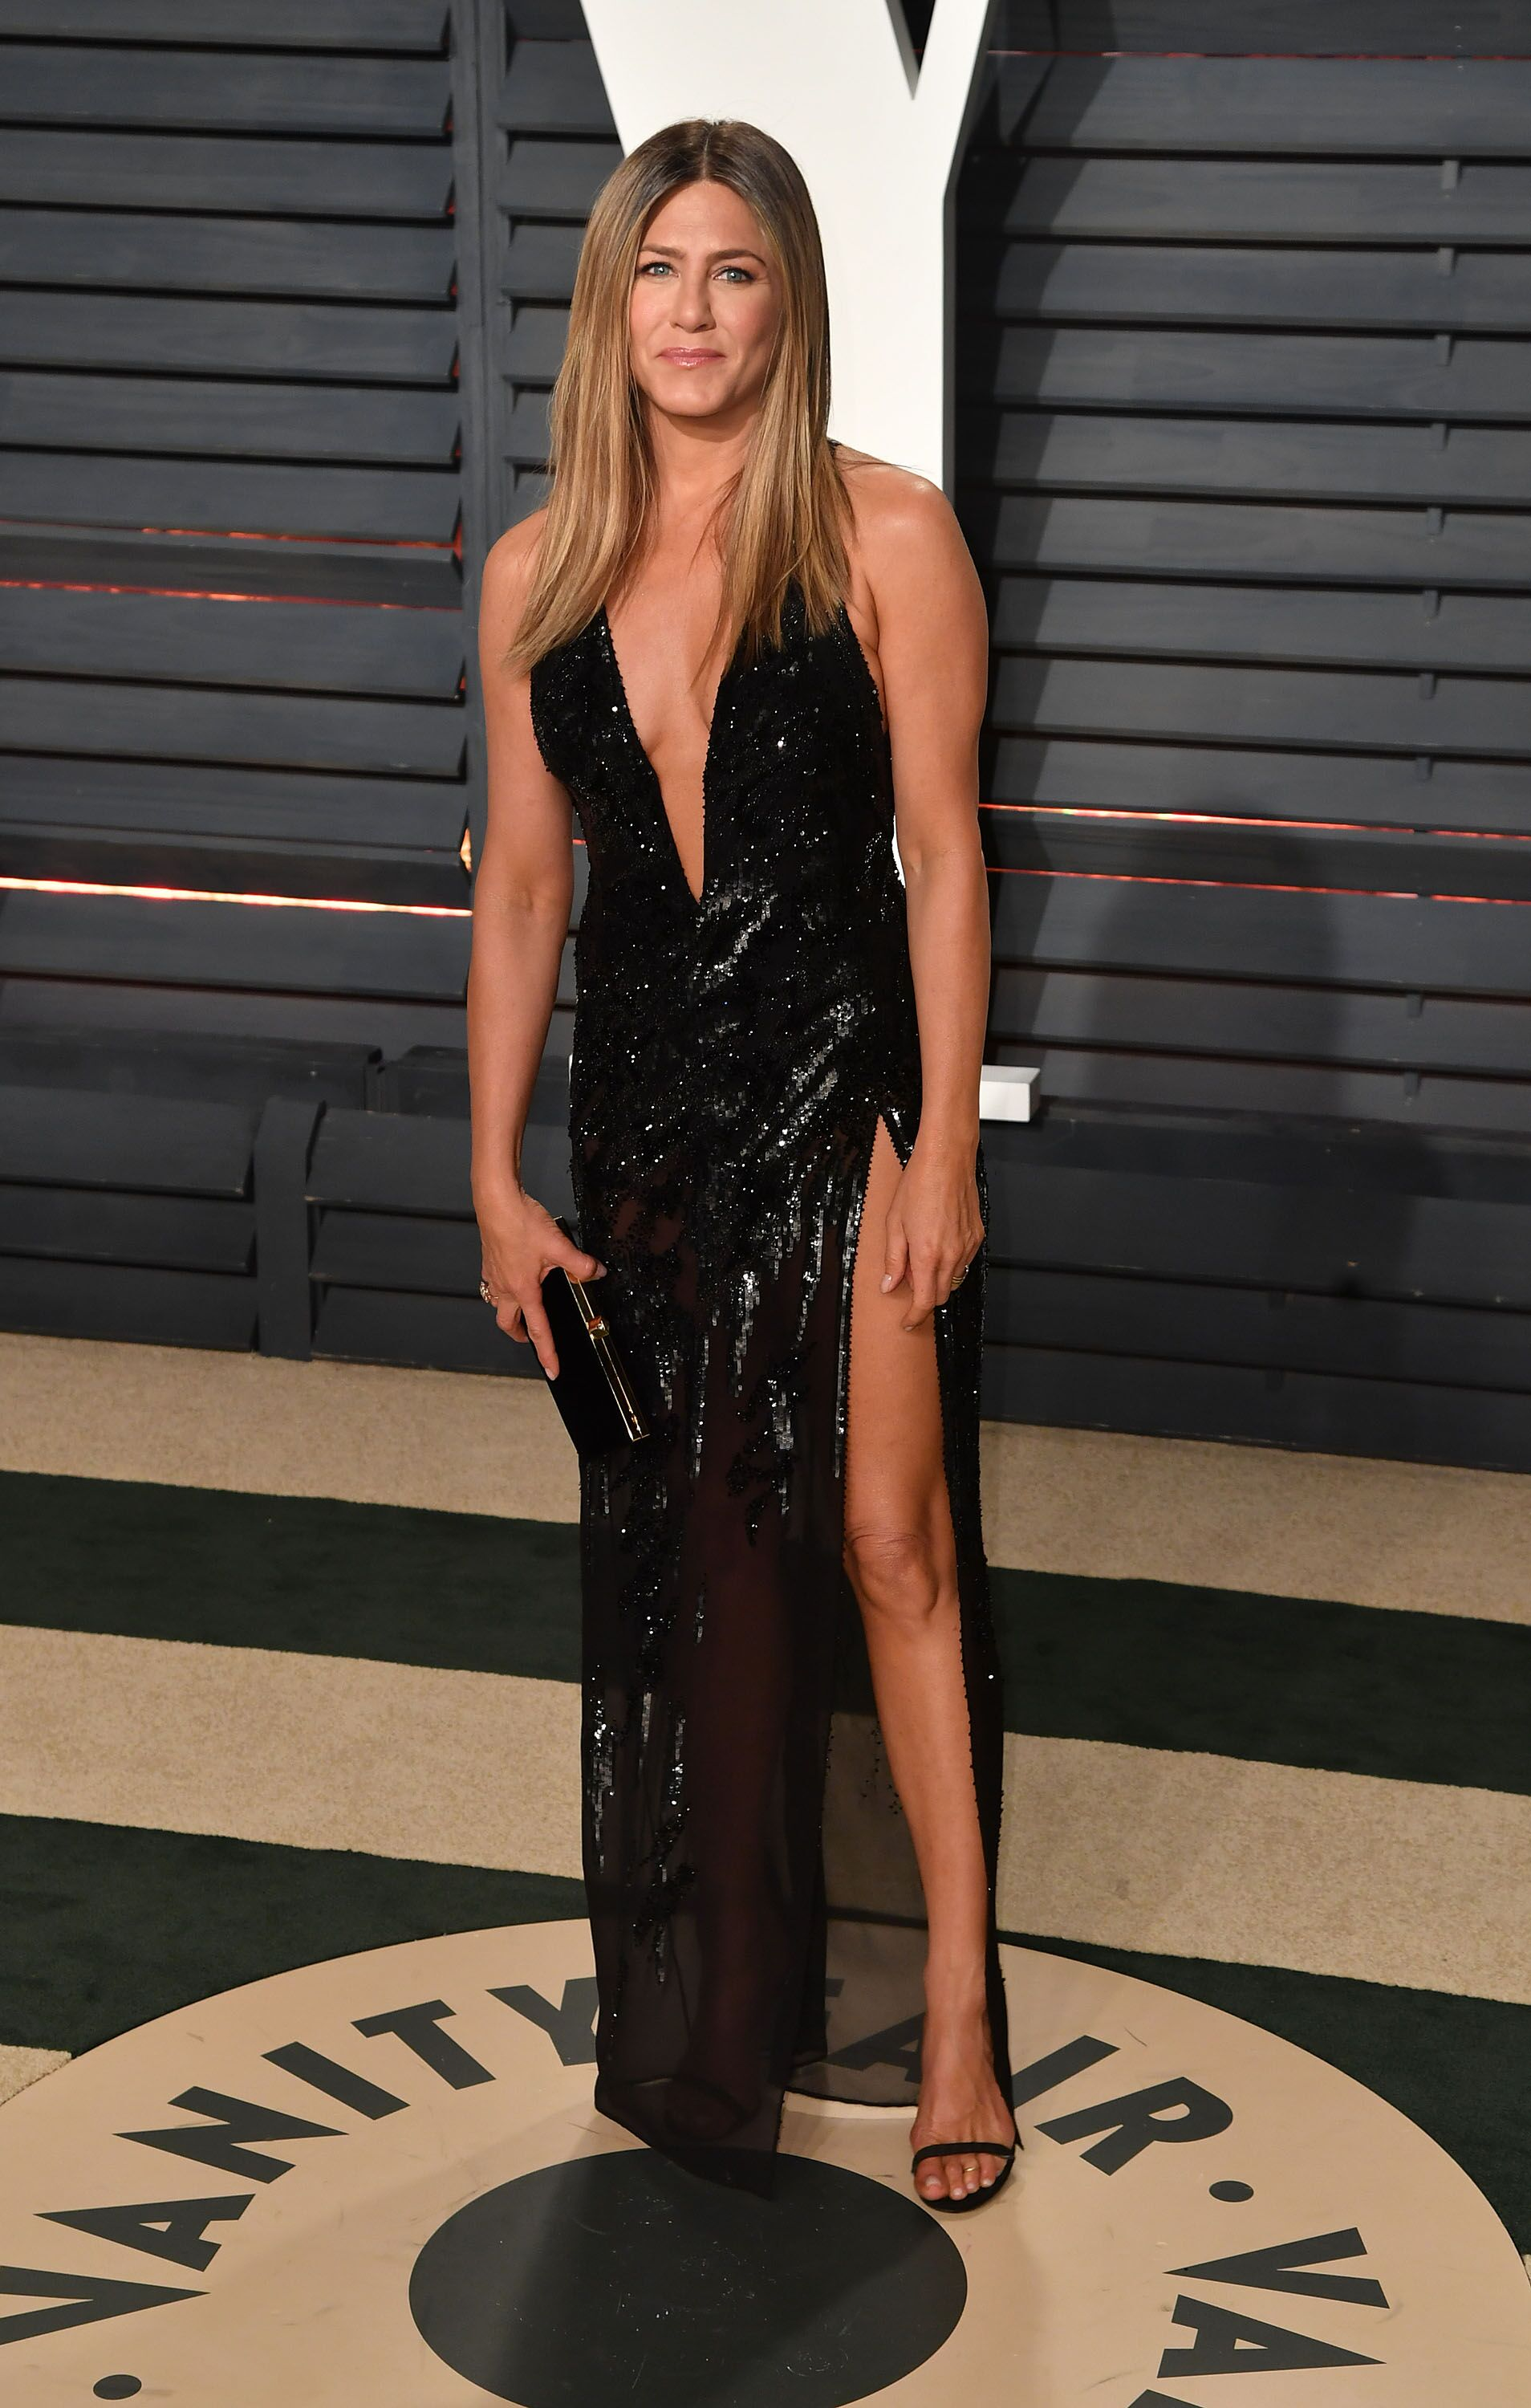 L'actrice Jennifer Aniston assiste à la Vanity Fair Oscar Party 2017 organisée par Graydon Carter au Wallis Annenberg Center for the Performing Arts le 26 février 2017 à Beverly Hills, Californie | Source : Getty Images